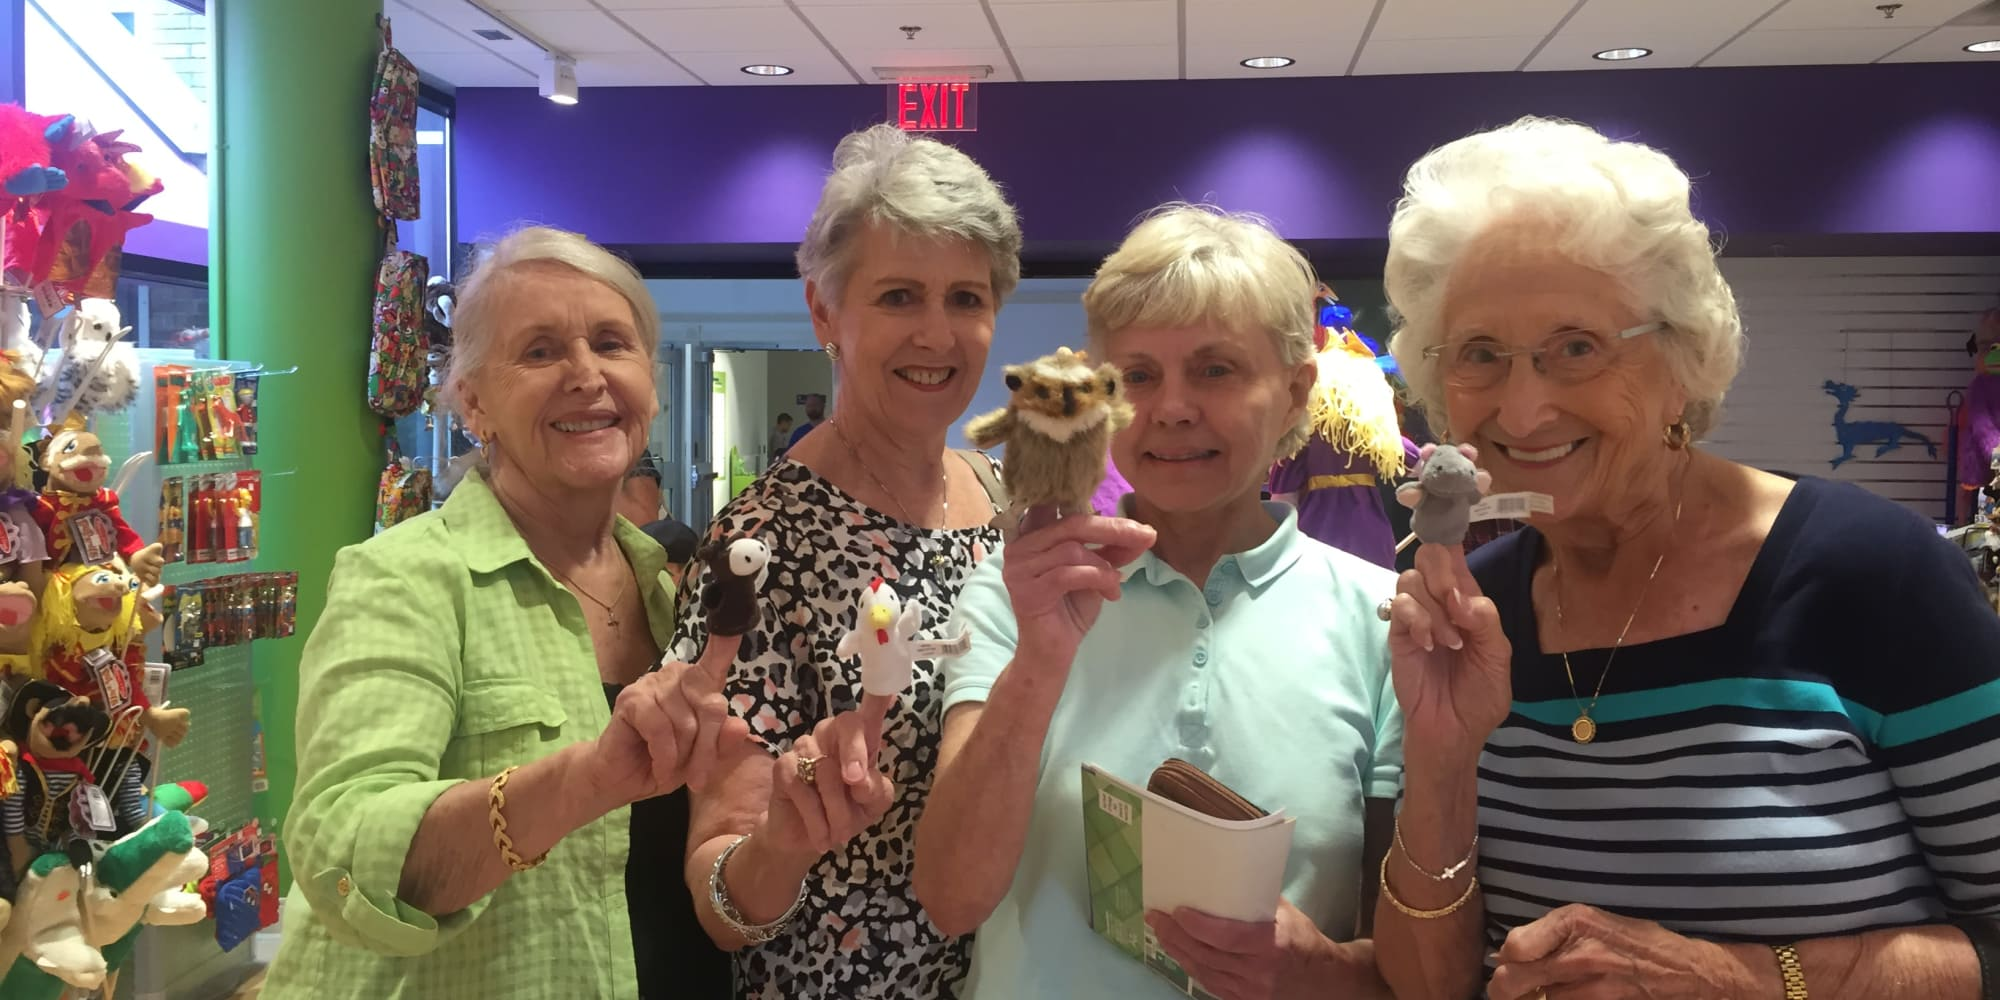 Residents from Julian Estates Gracious Retirement Living in Puyallup, Washington holding finger puppets